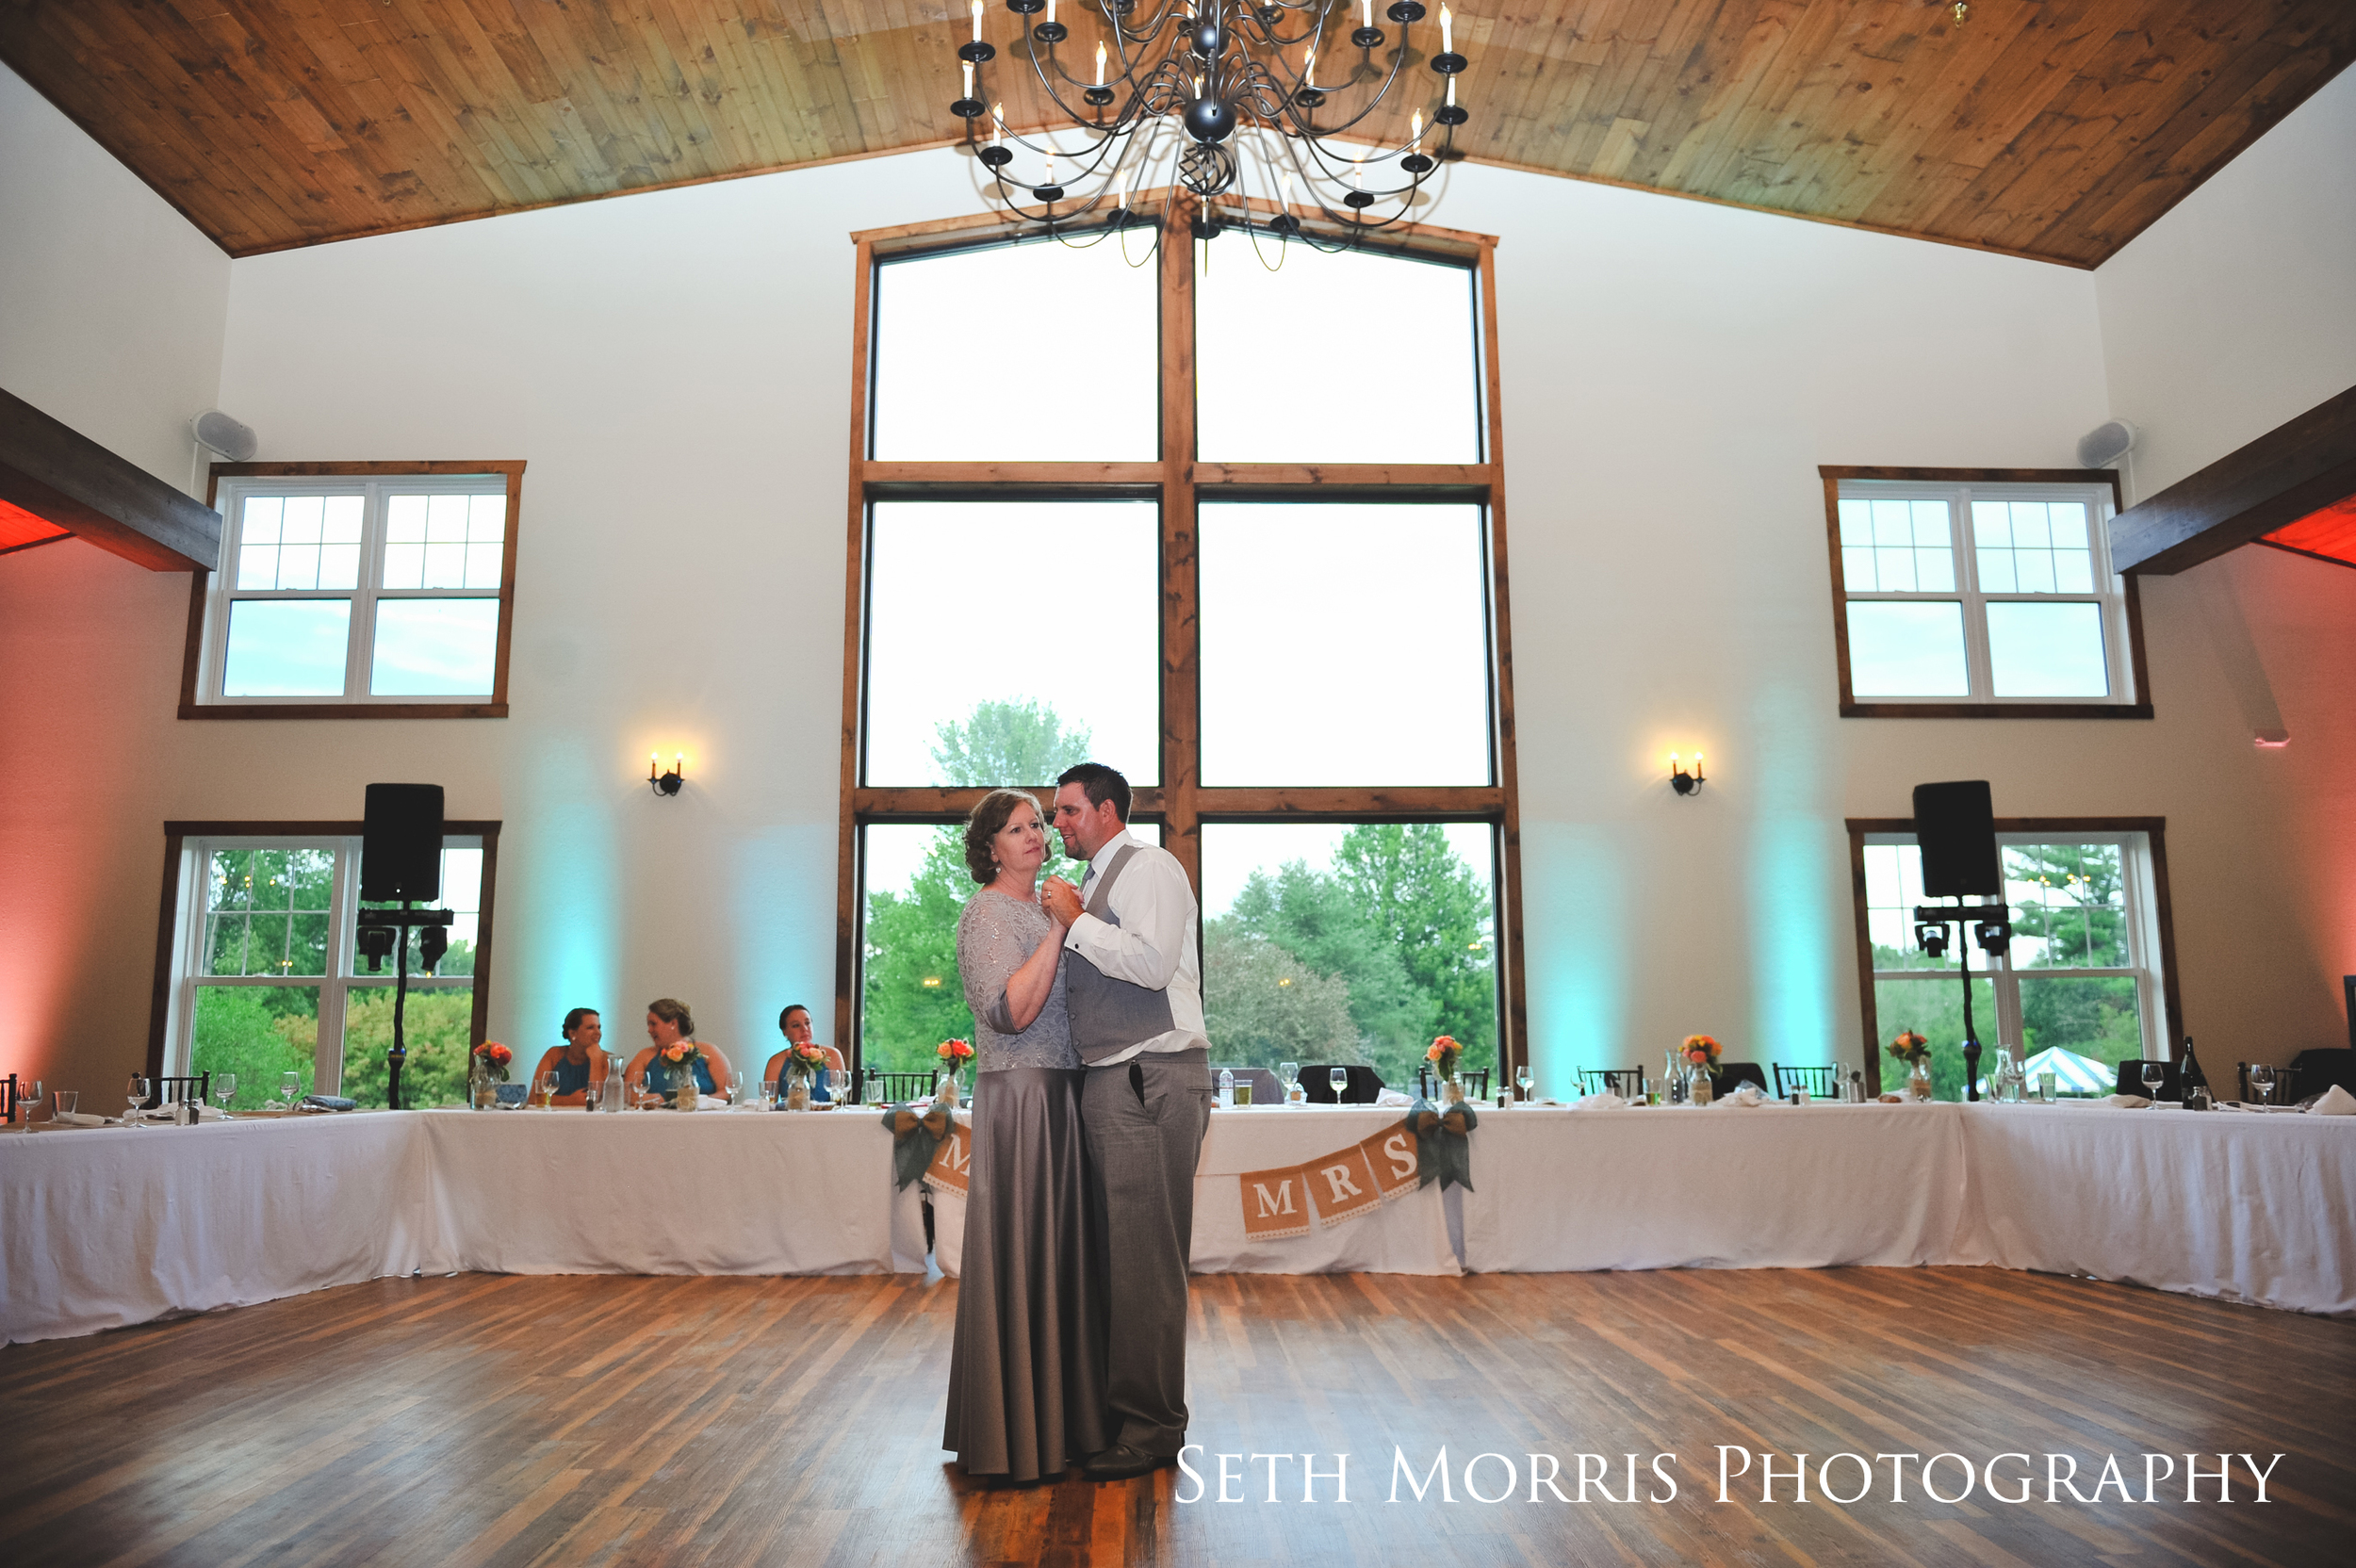 hornbaker-barn-wedding-photo-princeton-photographer-73.jpg